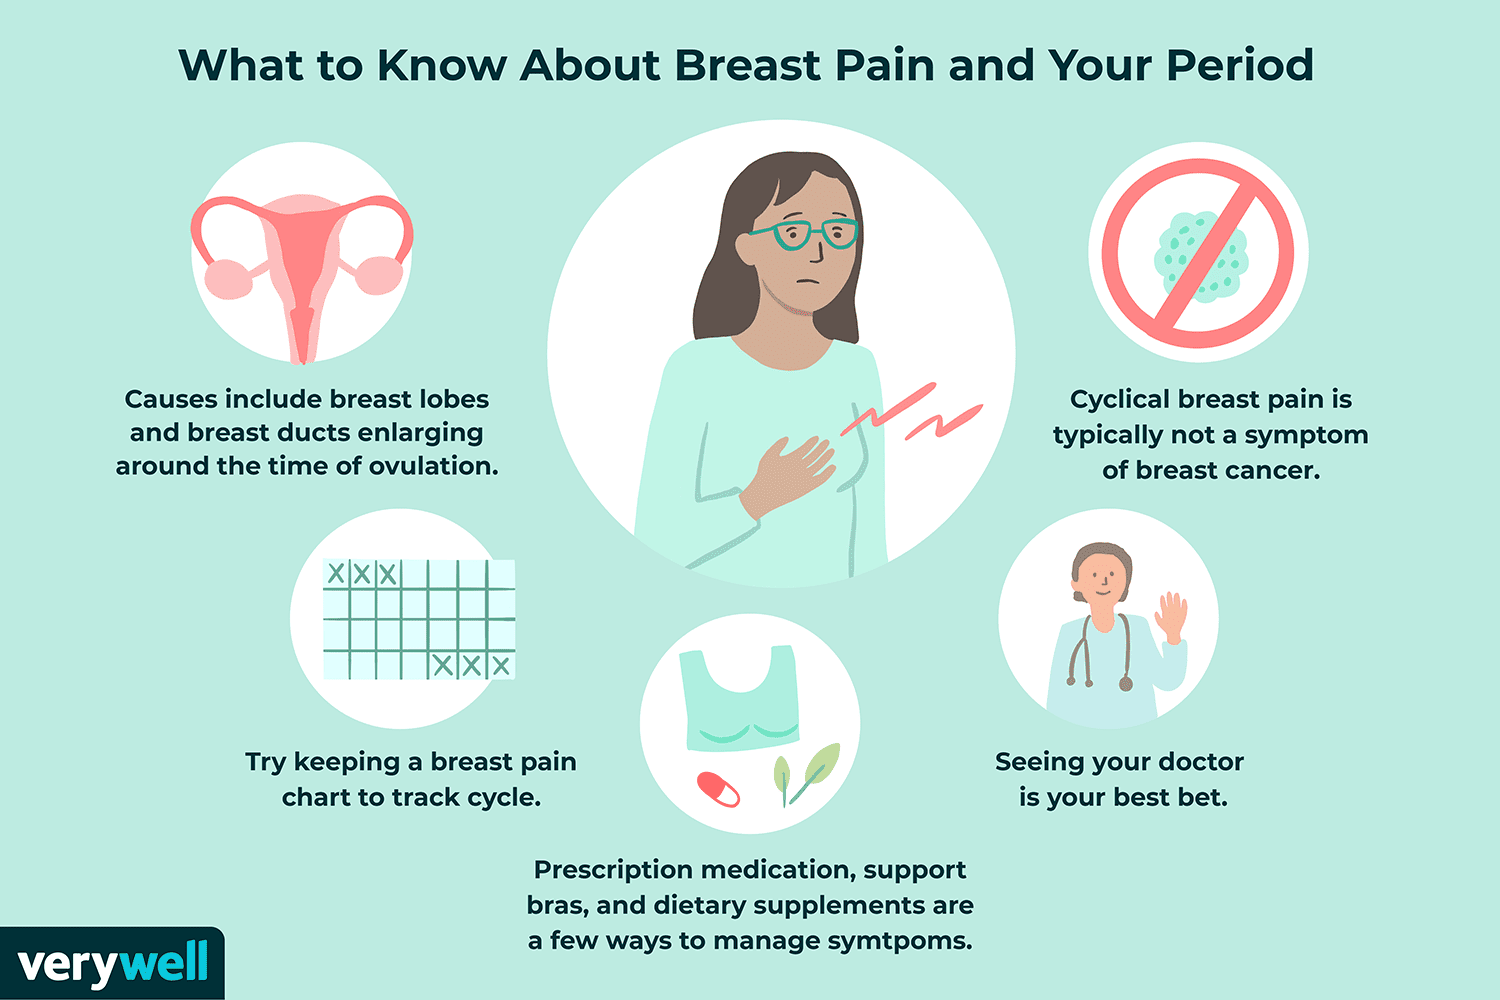 Breast Pain And Your Menstrual Period Veins and reddish spots can be found on the surface. breast pain and your menstrual period